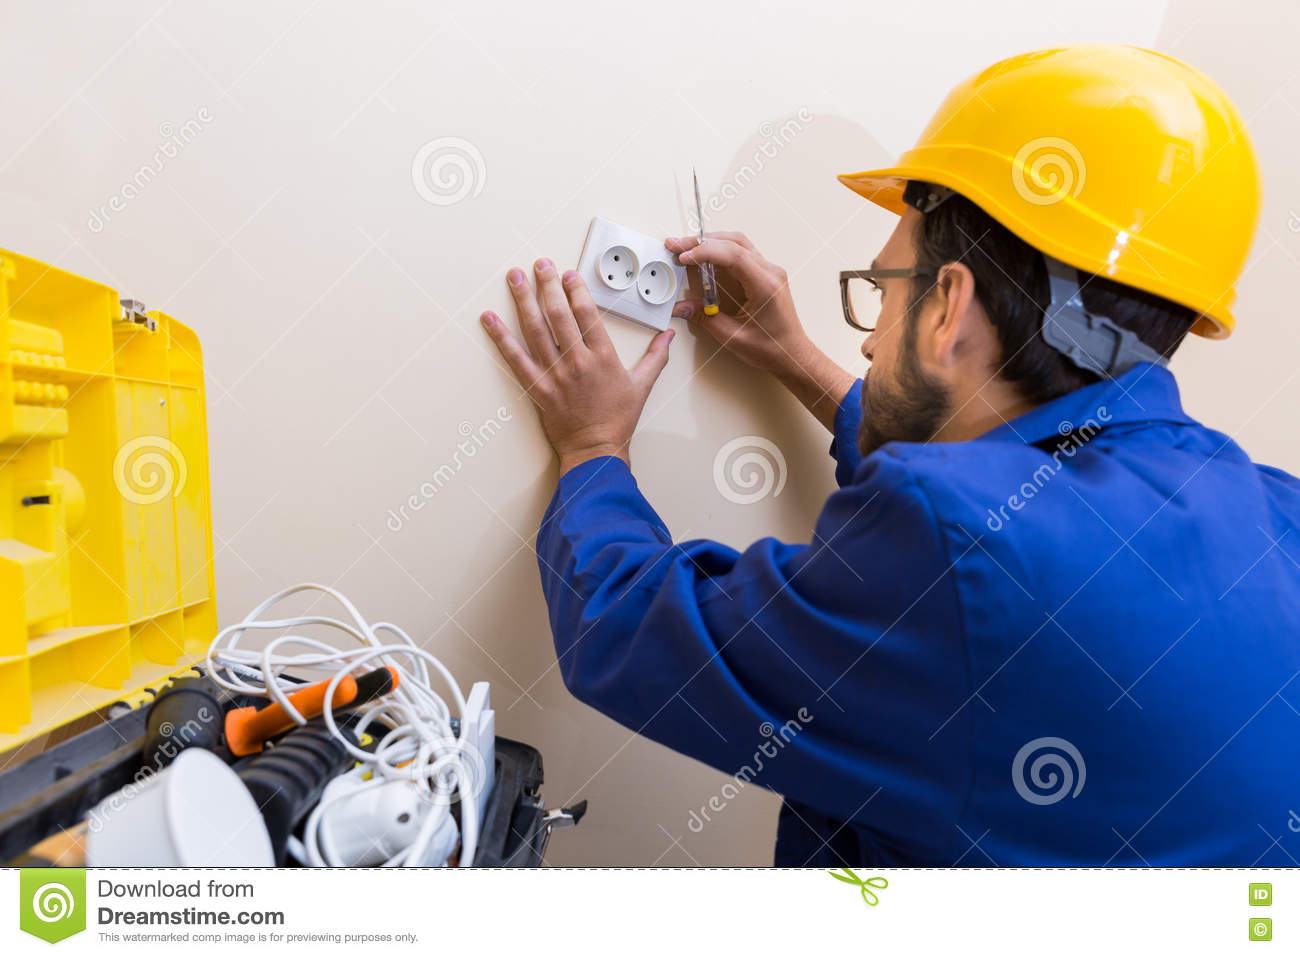 Electrician In Uniform And Hard Hat Working With Electric